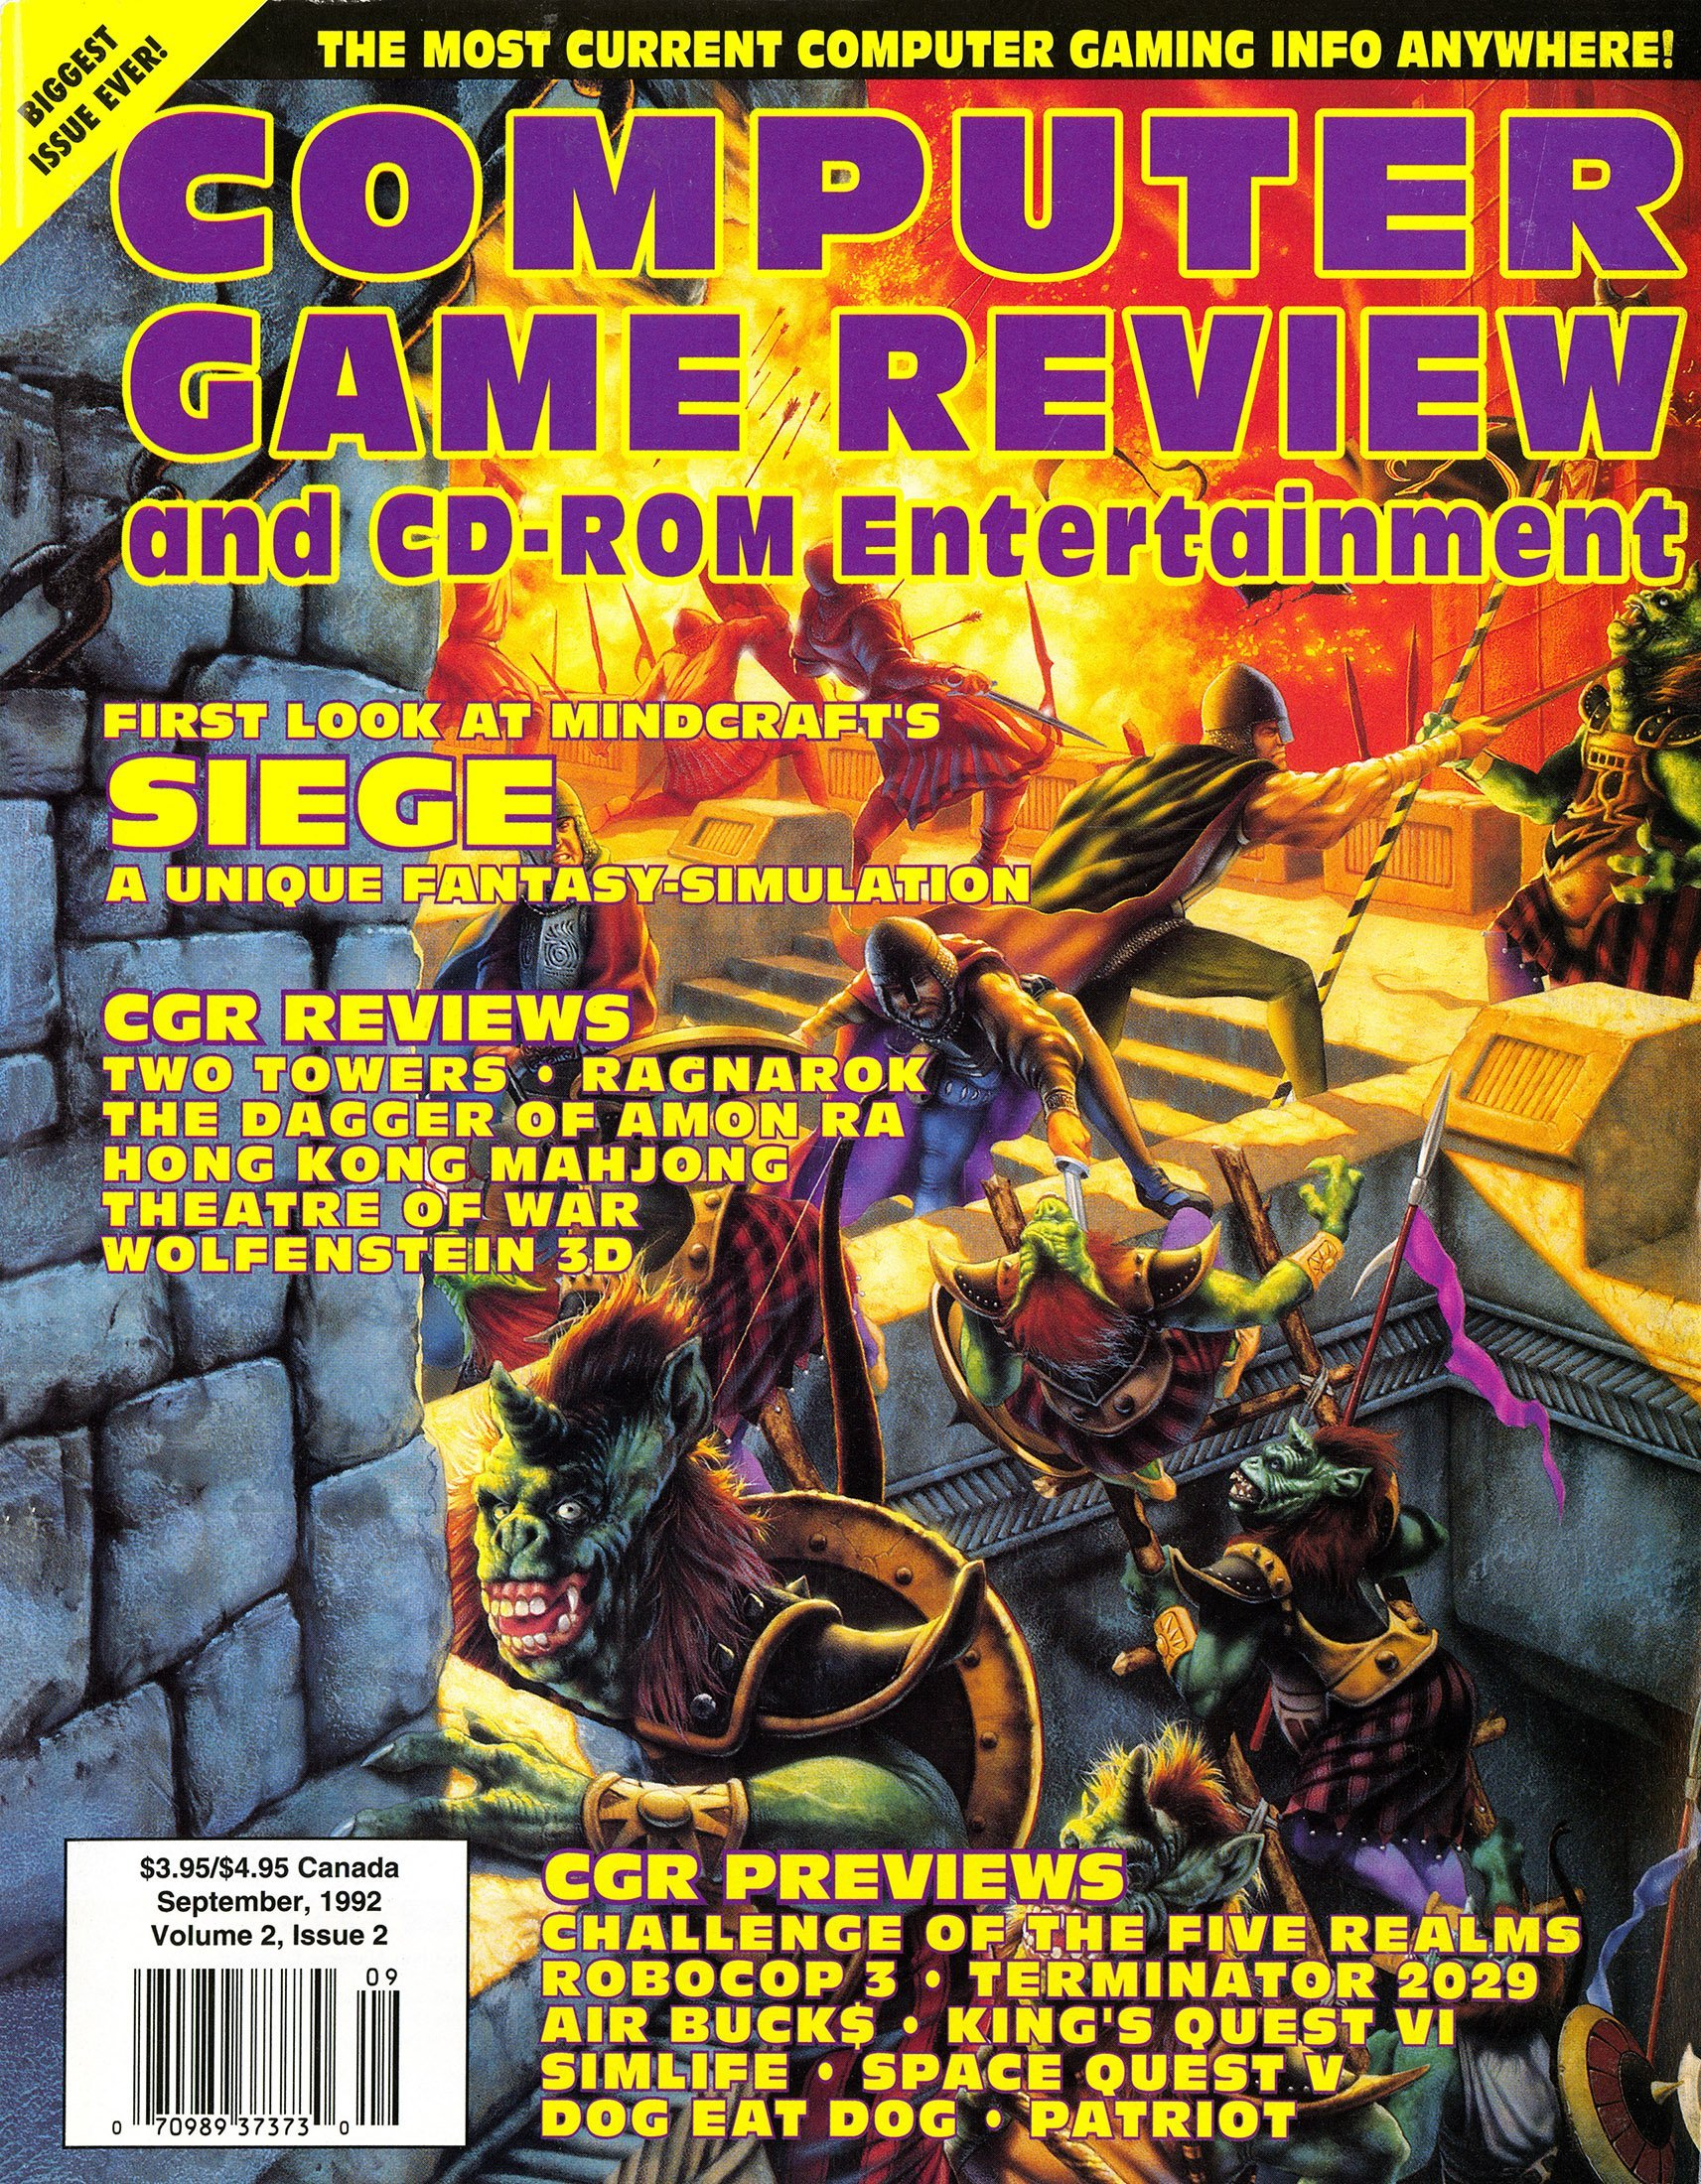 Computer Game Review Issue 14 (September 1992)